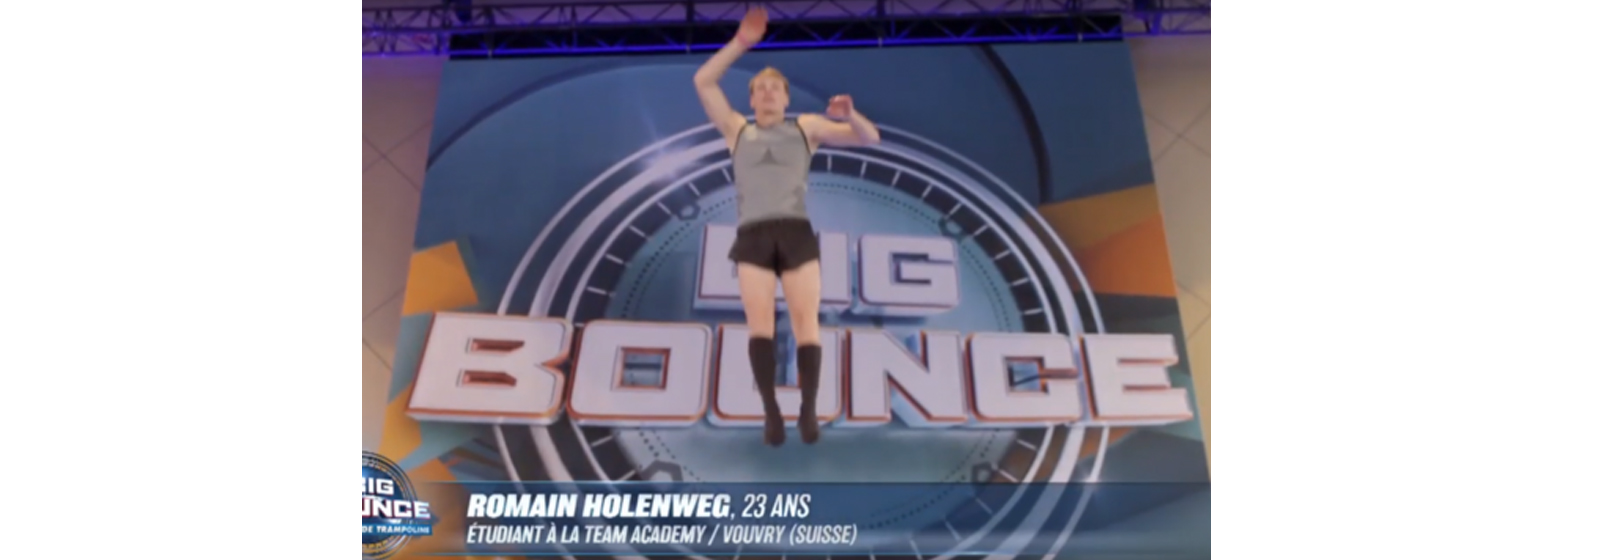 Romain Holenweg, étudiant à la Team Academy finaliste de l'émission big bounce sur TF1